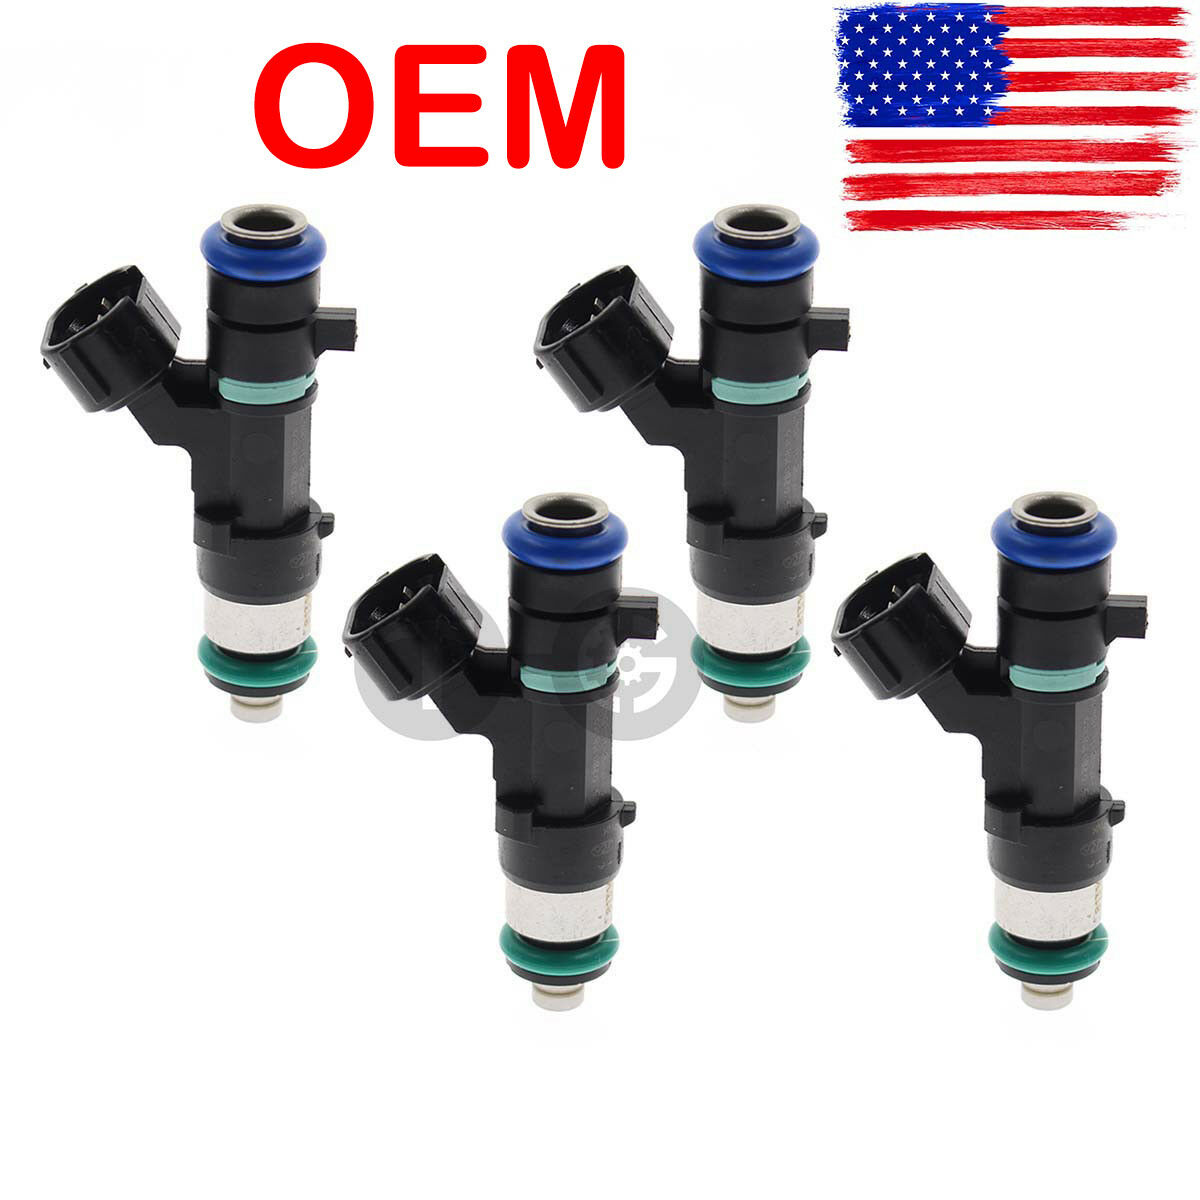 4pcs OEM Bosch Fuel Injectors FJ1020 Set for Nissan Rogue Altima Sentra 2.5L l4